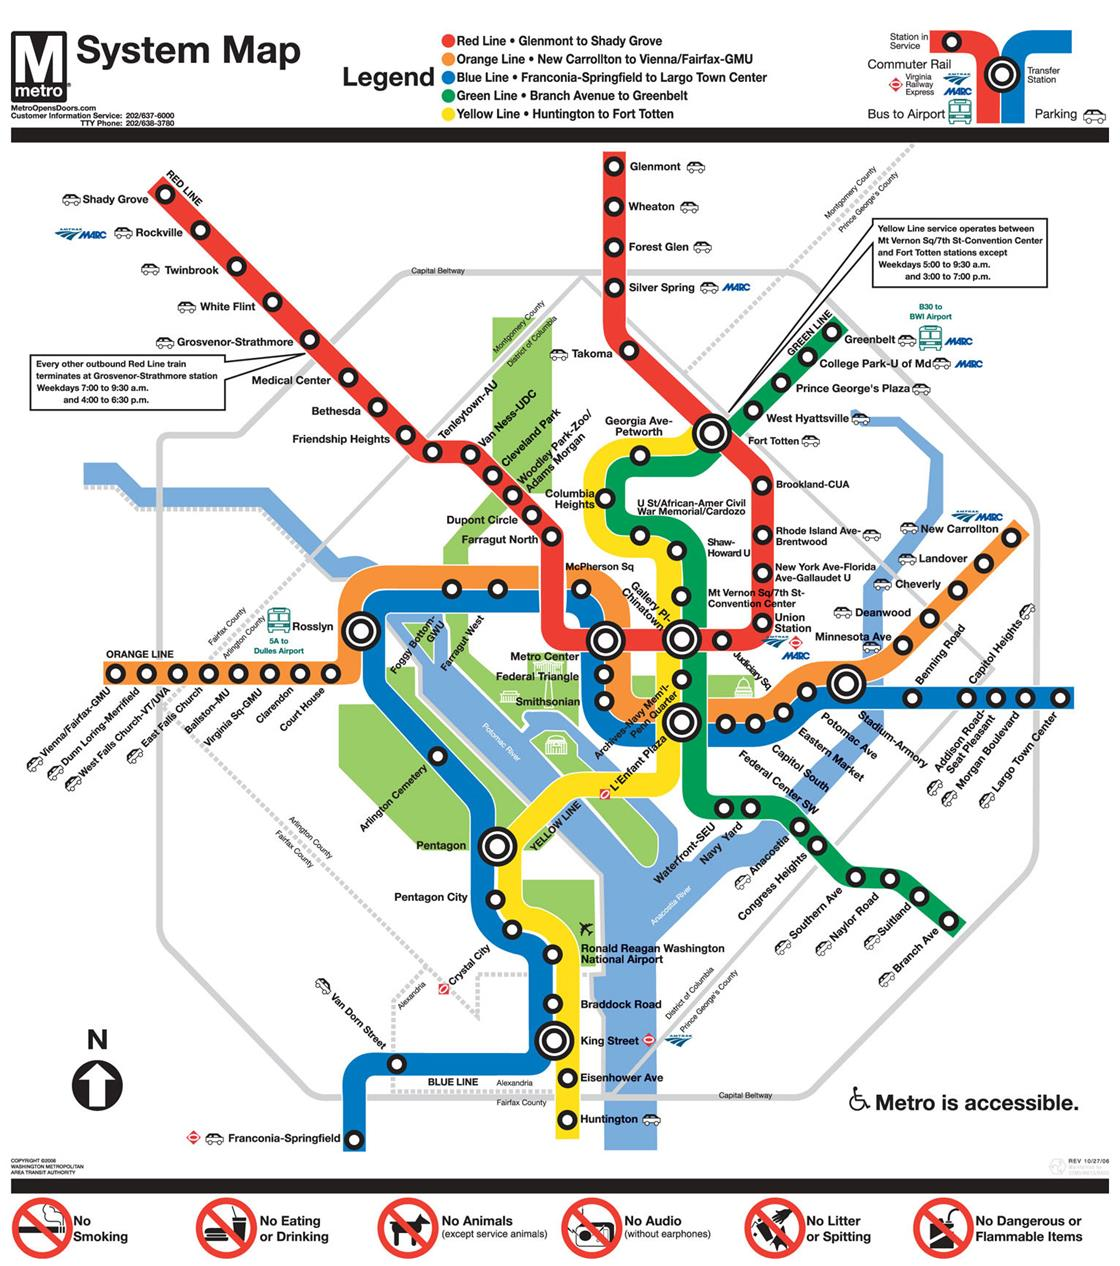 wmata that . how to make metro great again  vox